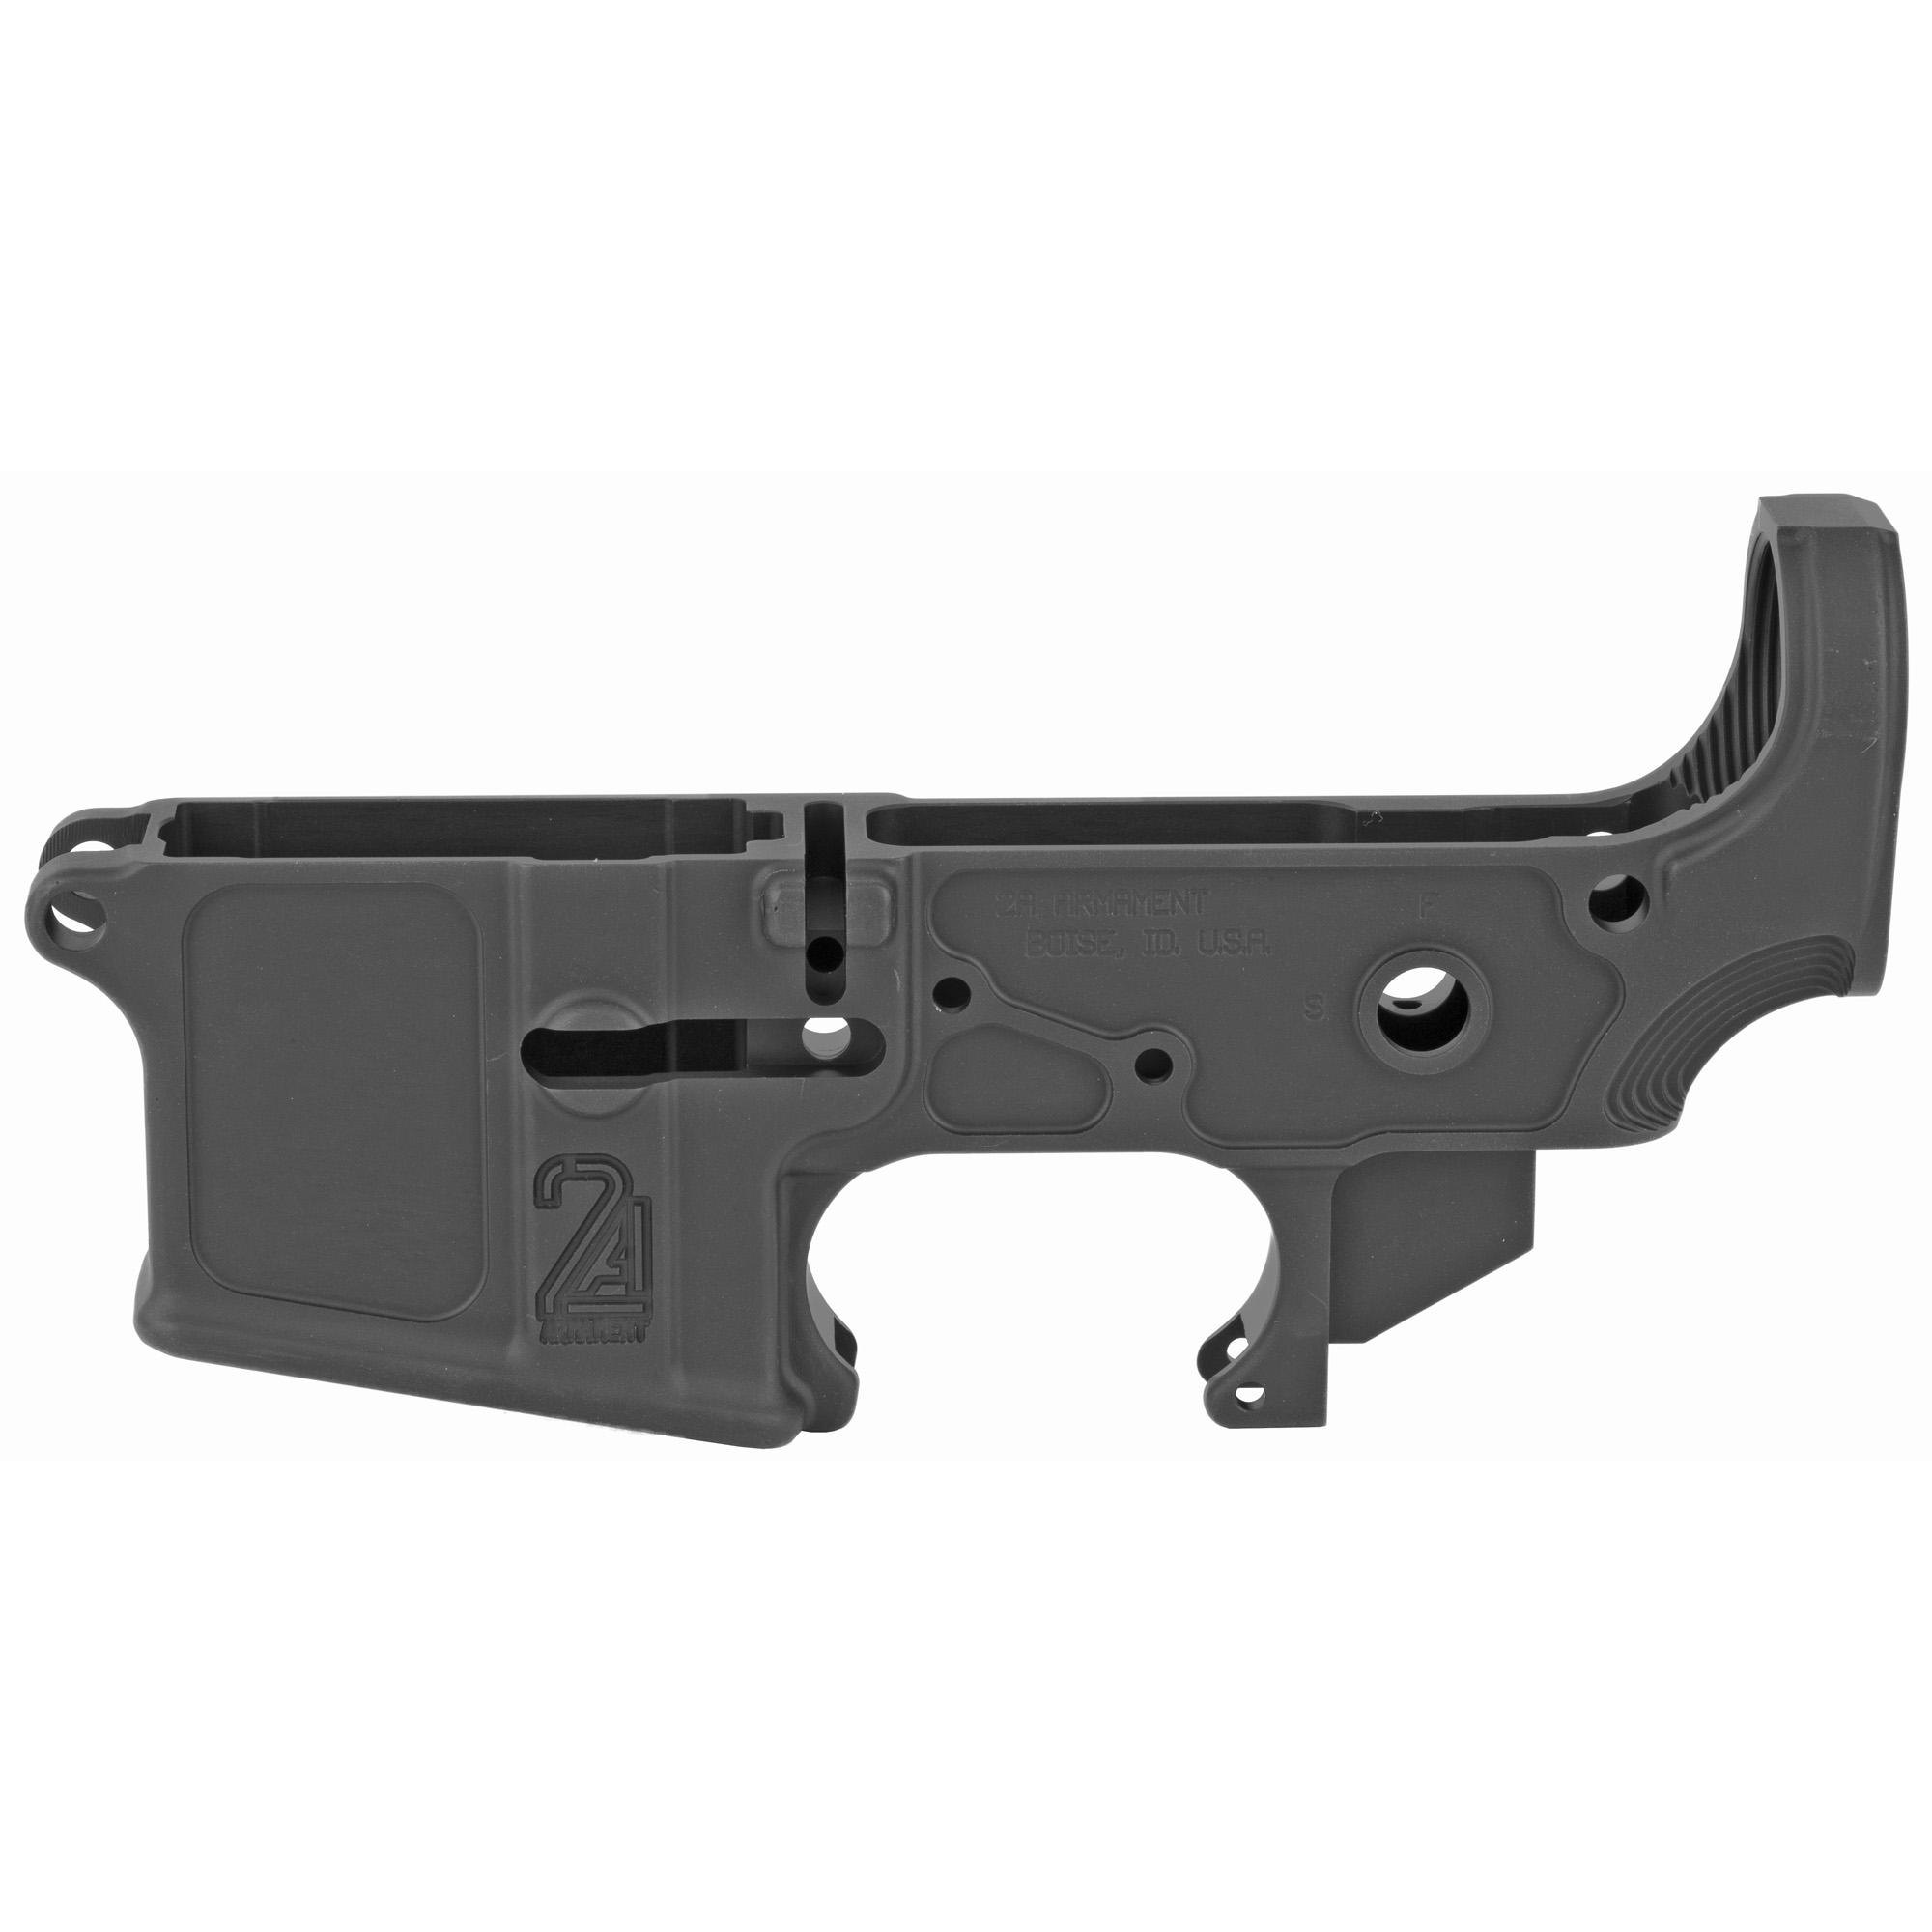 2a Palouse-lite Forged Lower Rcvr